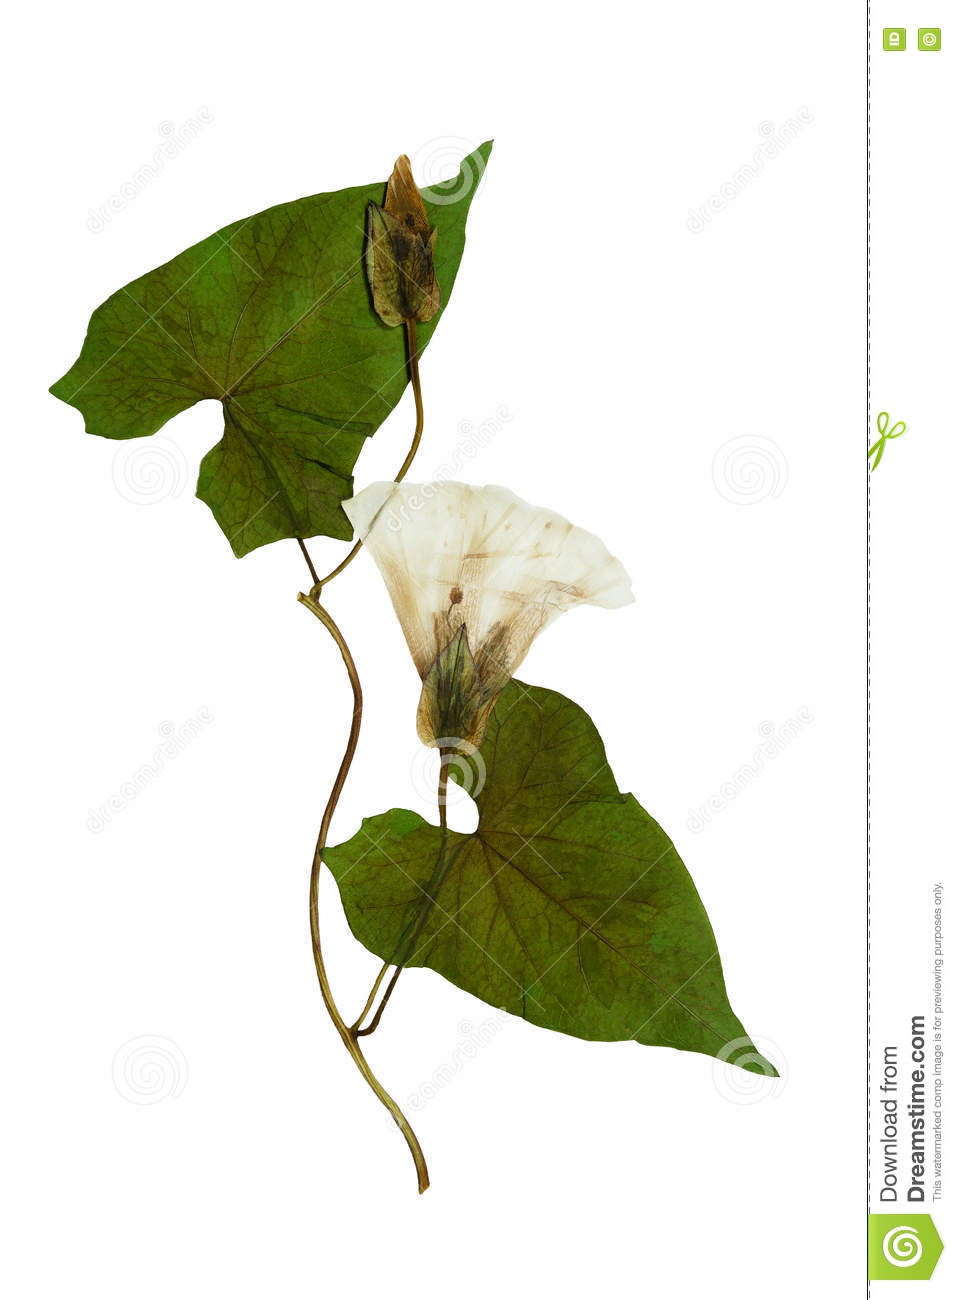 Pressed And Dried Flowers And Leaves Calystegia Sepium Stock Photo.